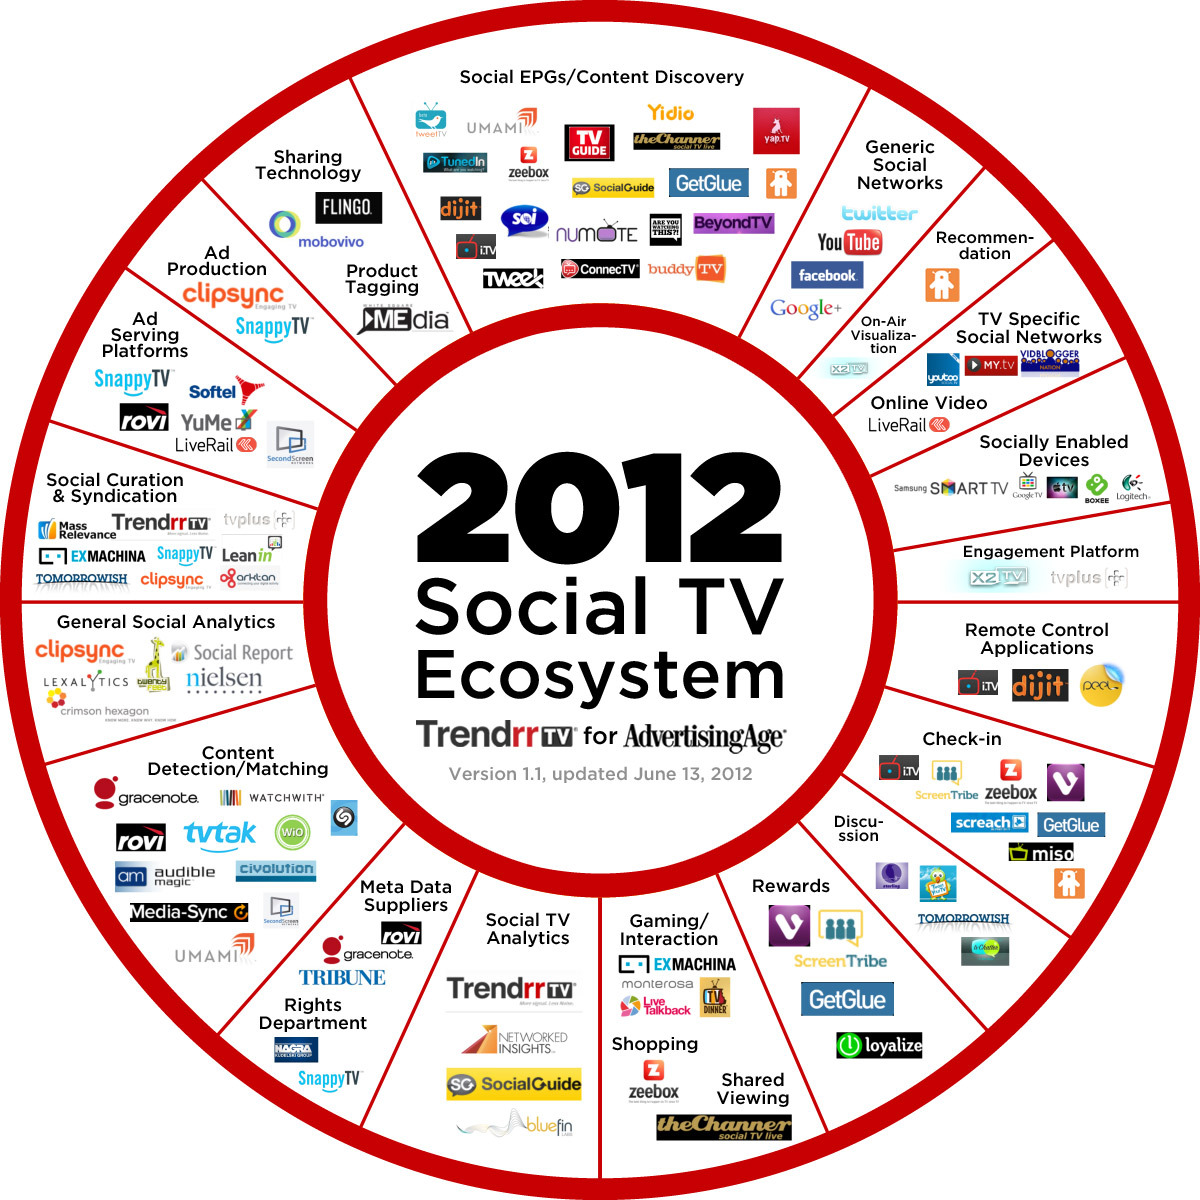 "The Exploding Social-TV Ecosystem: Updated INFOGRAPHIC An Expanded Snapshot of the Companies, Platforms and Services Surrounding Social TV Reblogged from AdAge A few weeks back, Ad Age worked with our editorial partner Trendrr, the social-media monitoring firm, to produce a 1.0 version of what we titled A Snapshot of the Exploding Social-TV Ecosystem. We asked for reader feedback — asking who we may have left out — and now we've expanded and updated the chart. ""Three years ago, TV networks were skeptical about social TV,"" Trendrr founder and CEO Mark Ghuneim tells me. ""Now that the industry has embraced the potential and benefits of real-time synchronous viewing behavior, there's a budding industry of technology and service platforms eager to capitalize on what amounts to a brand new experience layer for television audiences. While we expect companies to eventually consolidate and incorporate standards around the services that provide the most value and get the most usage, the underlying activity — people sharing experiences with each other — will remain at the center of everything."""